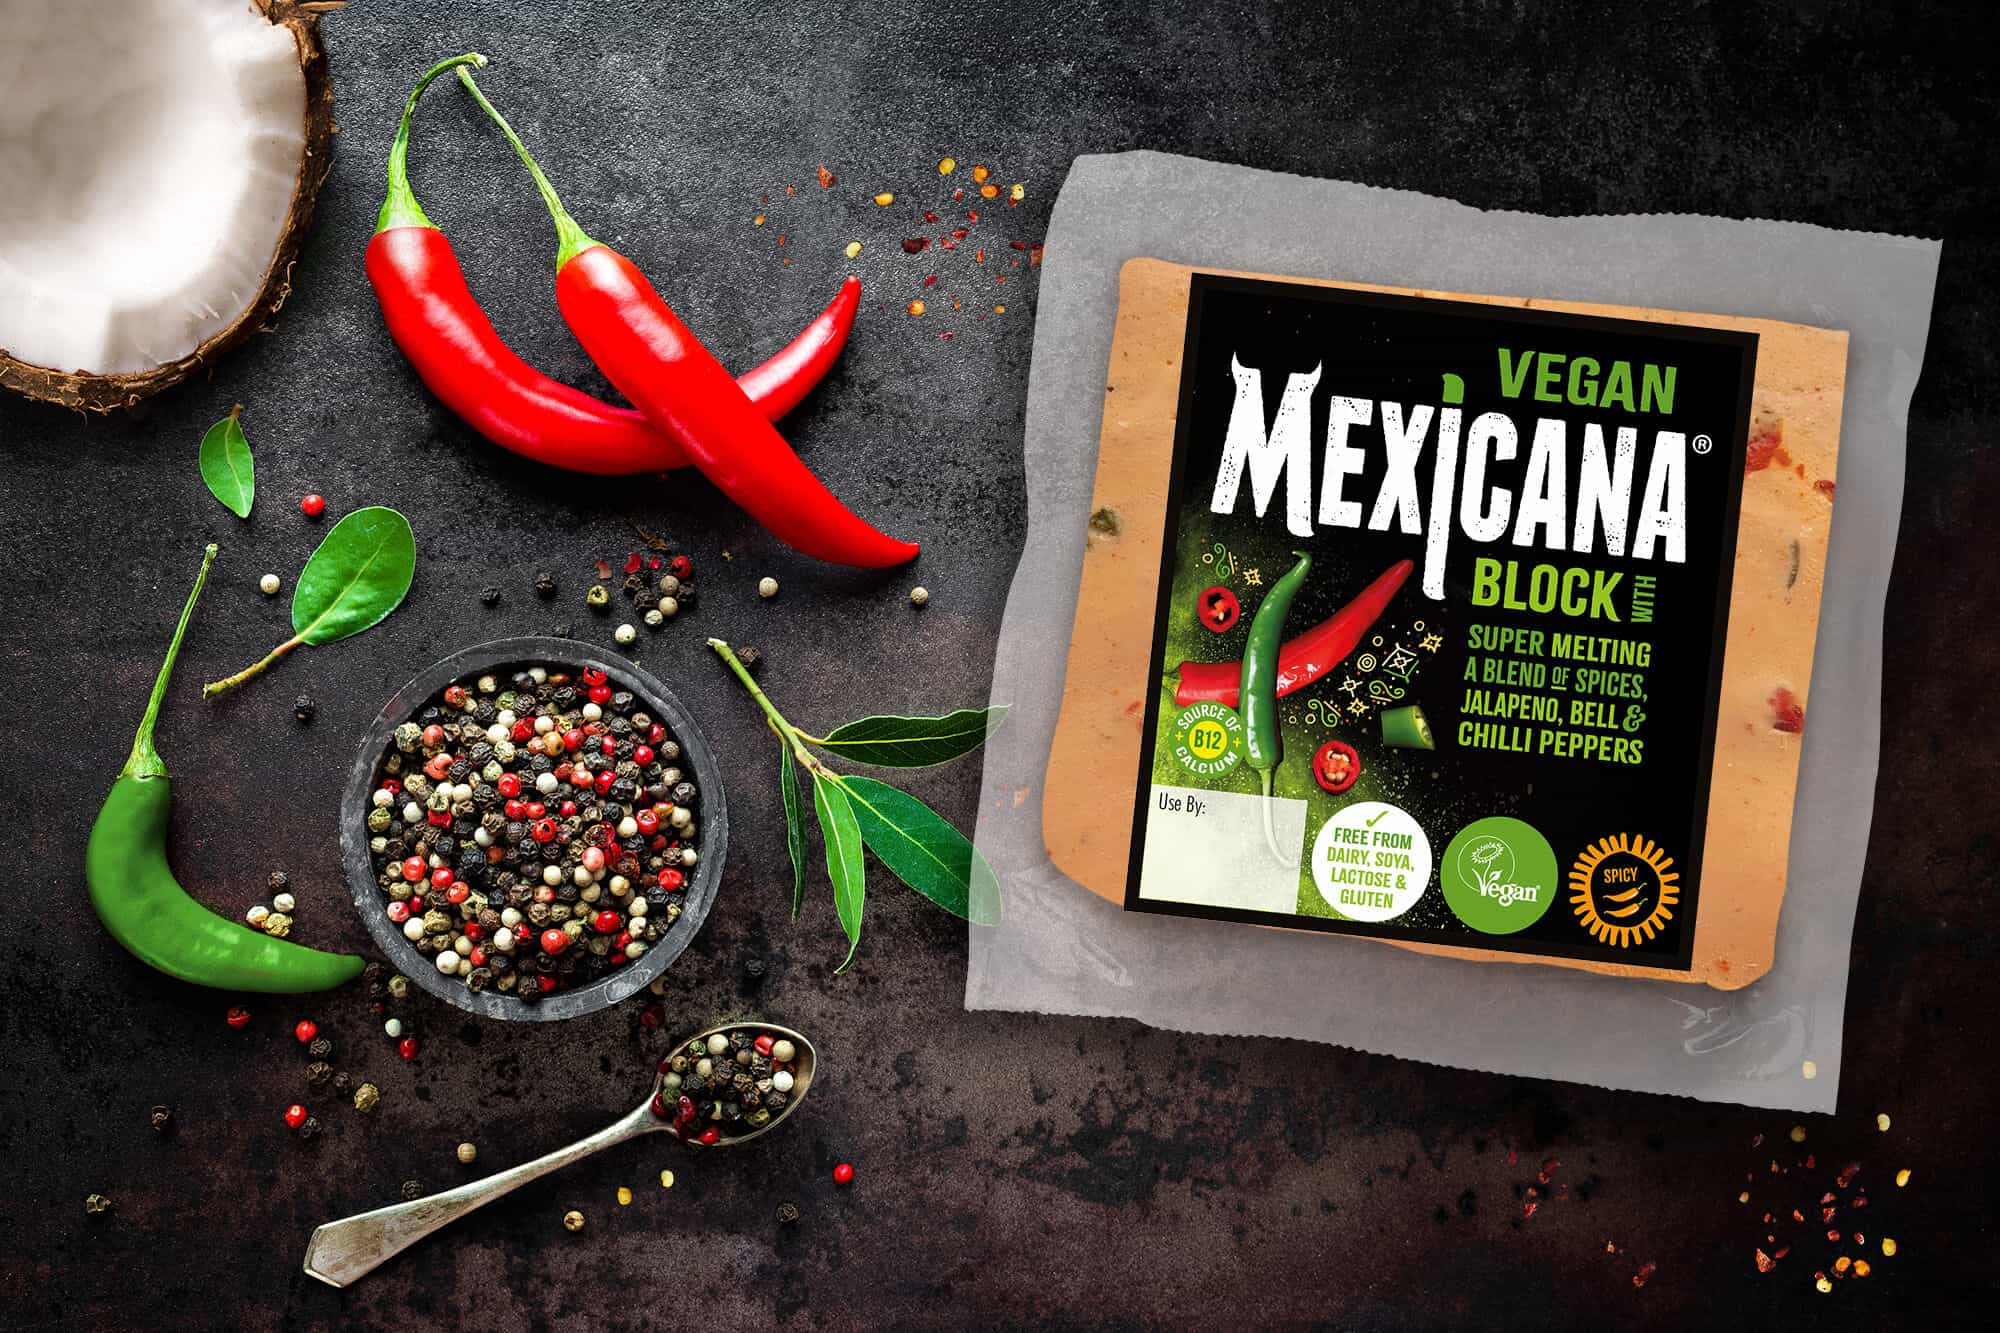 Norseland Mexicana Vegan cheese